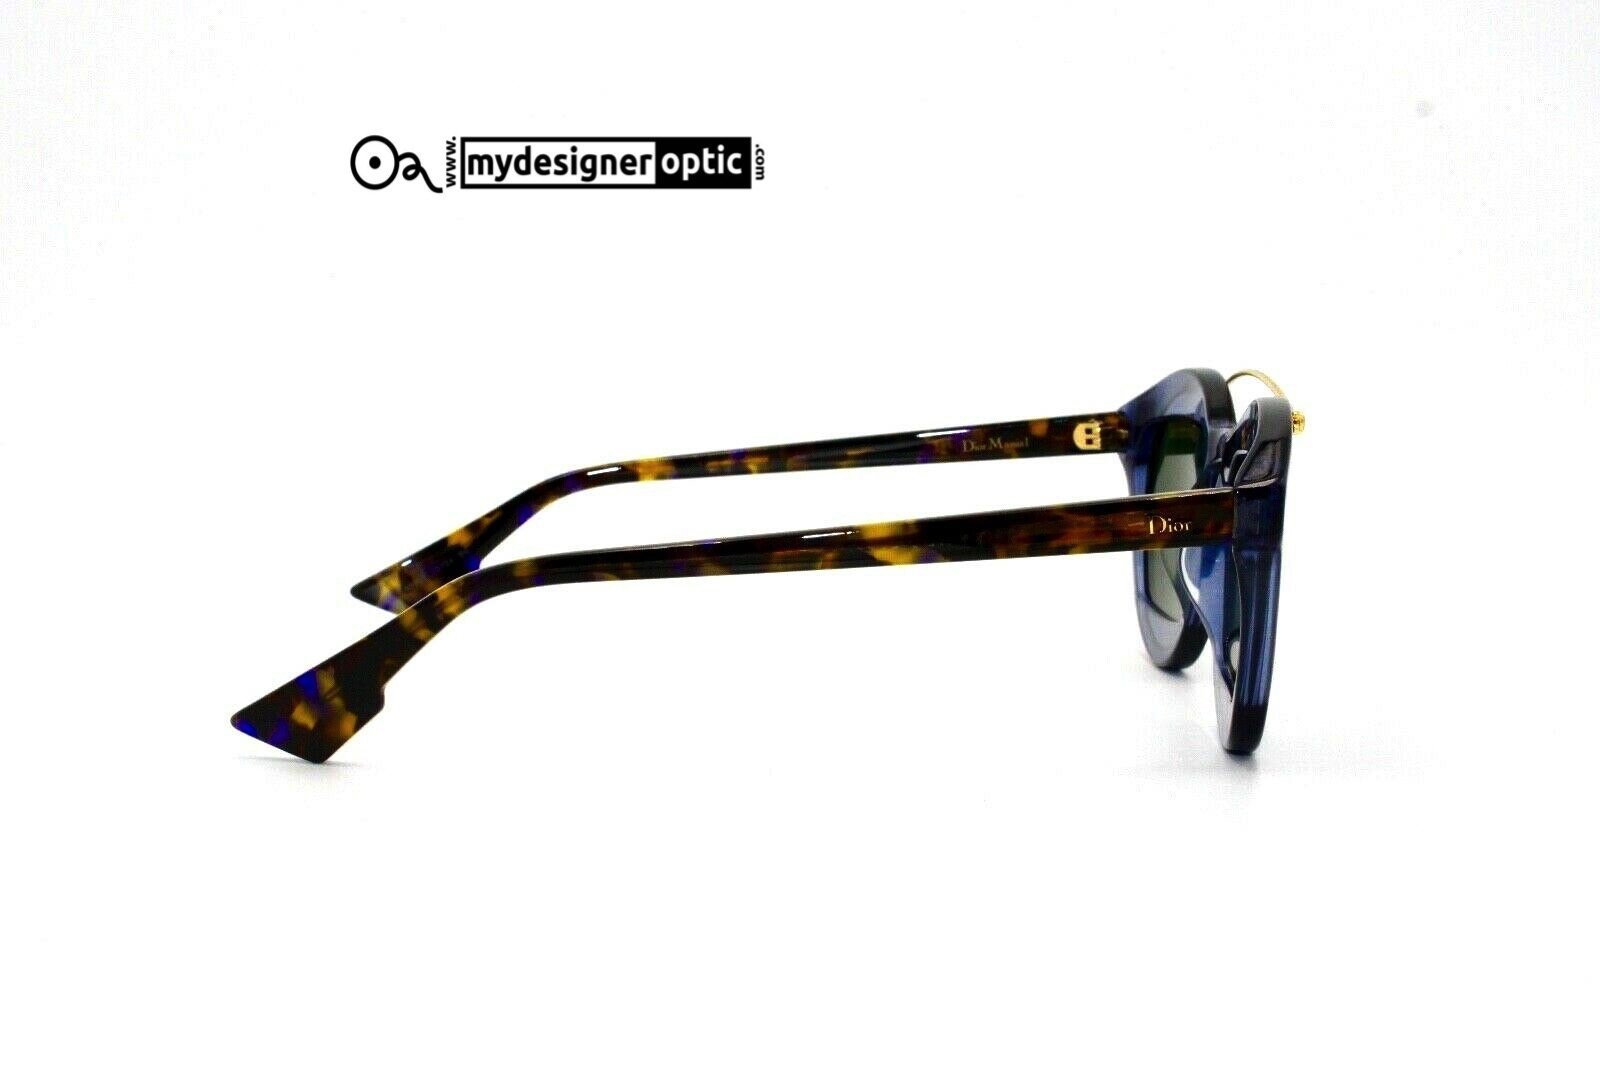 Christian Dior Mania 1 Sunglasses 889QT 50-24-150 Made in Italy - Mydesigneroptic